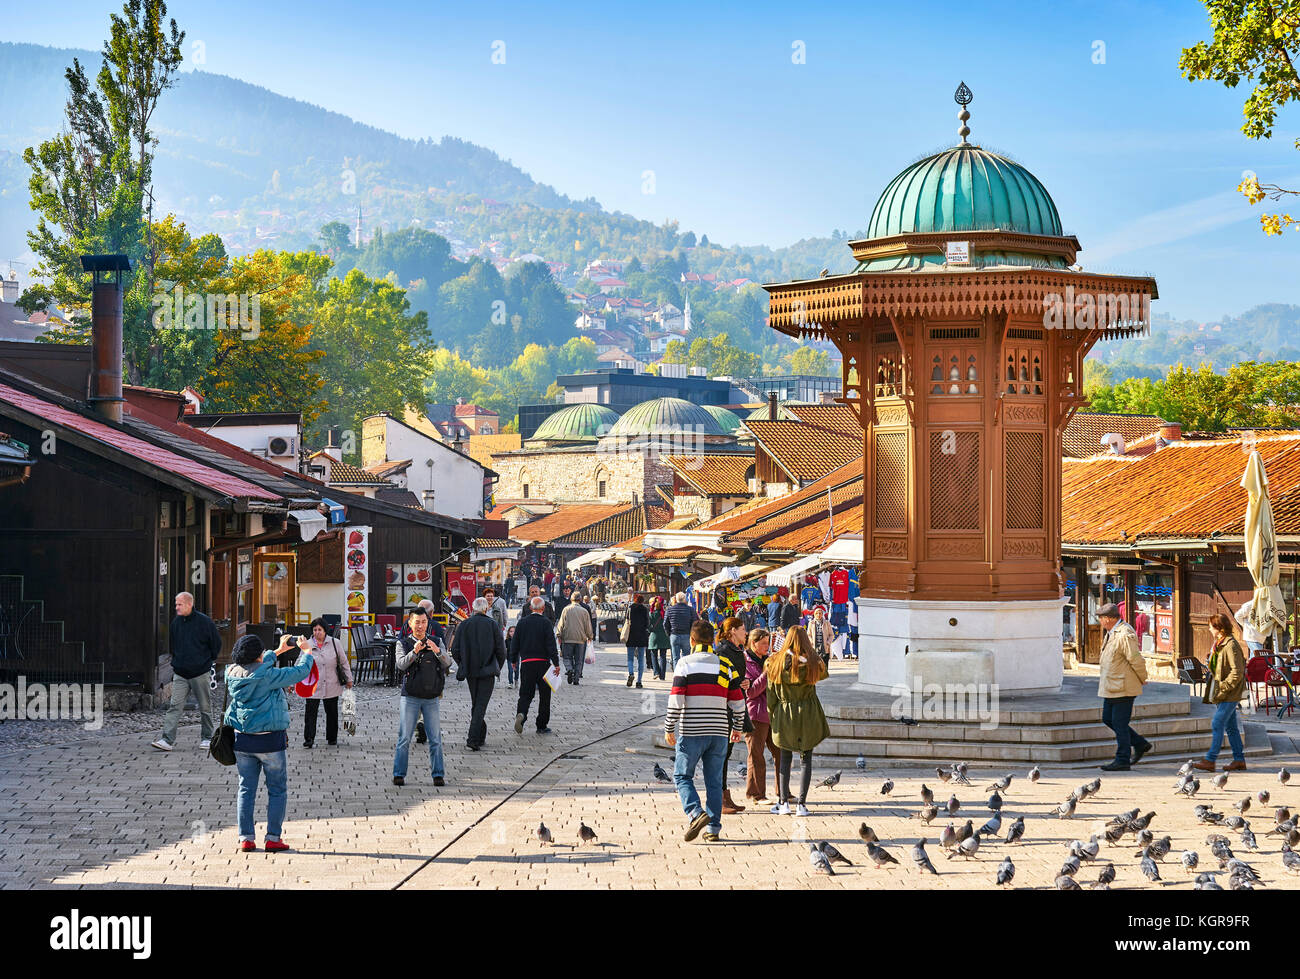 Sebilj Fountain, Bascarsija district, Sarajevo Old Town, Bosnia and Herzegovina - Stock Image